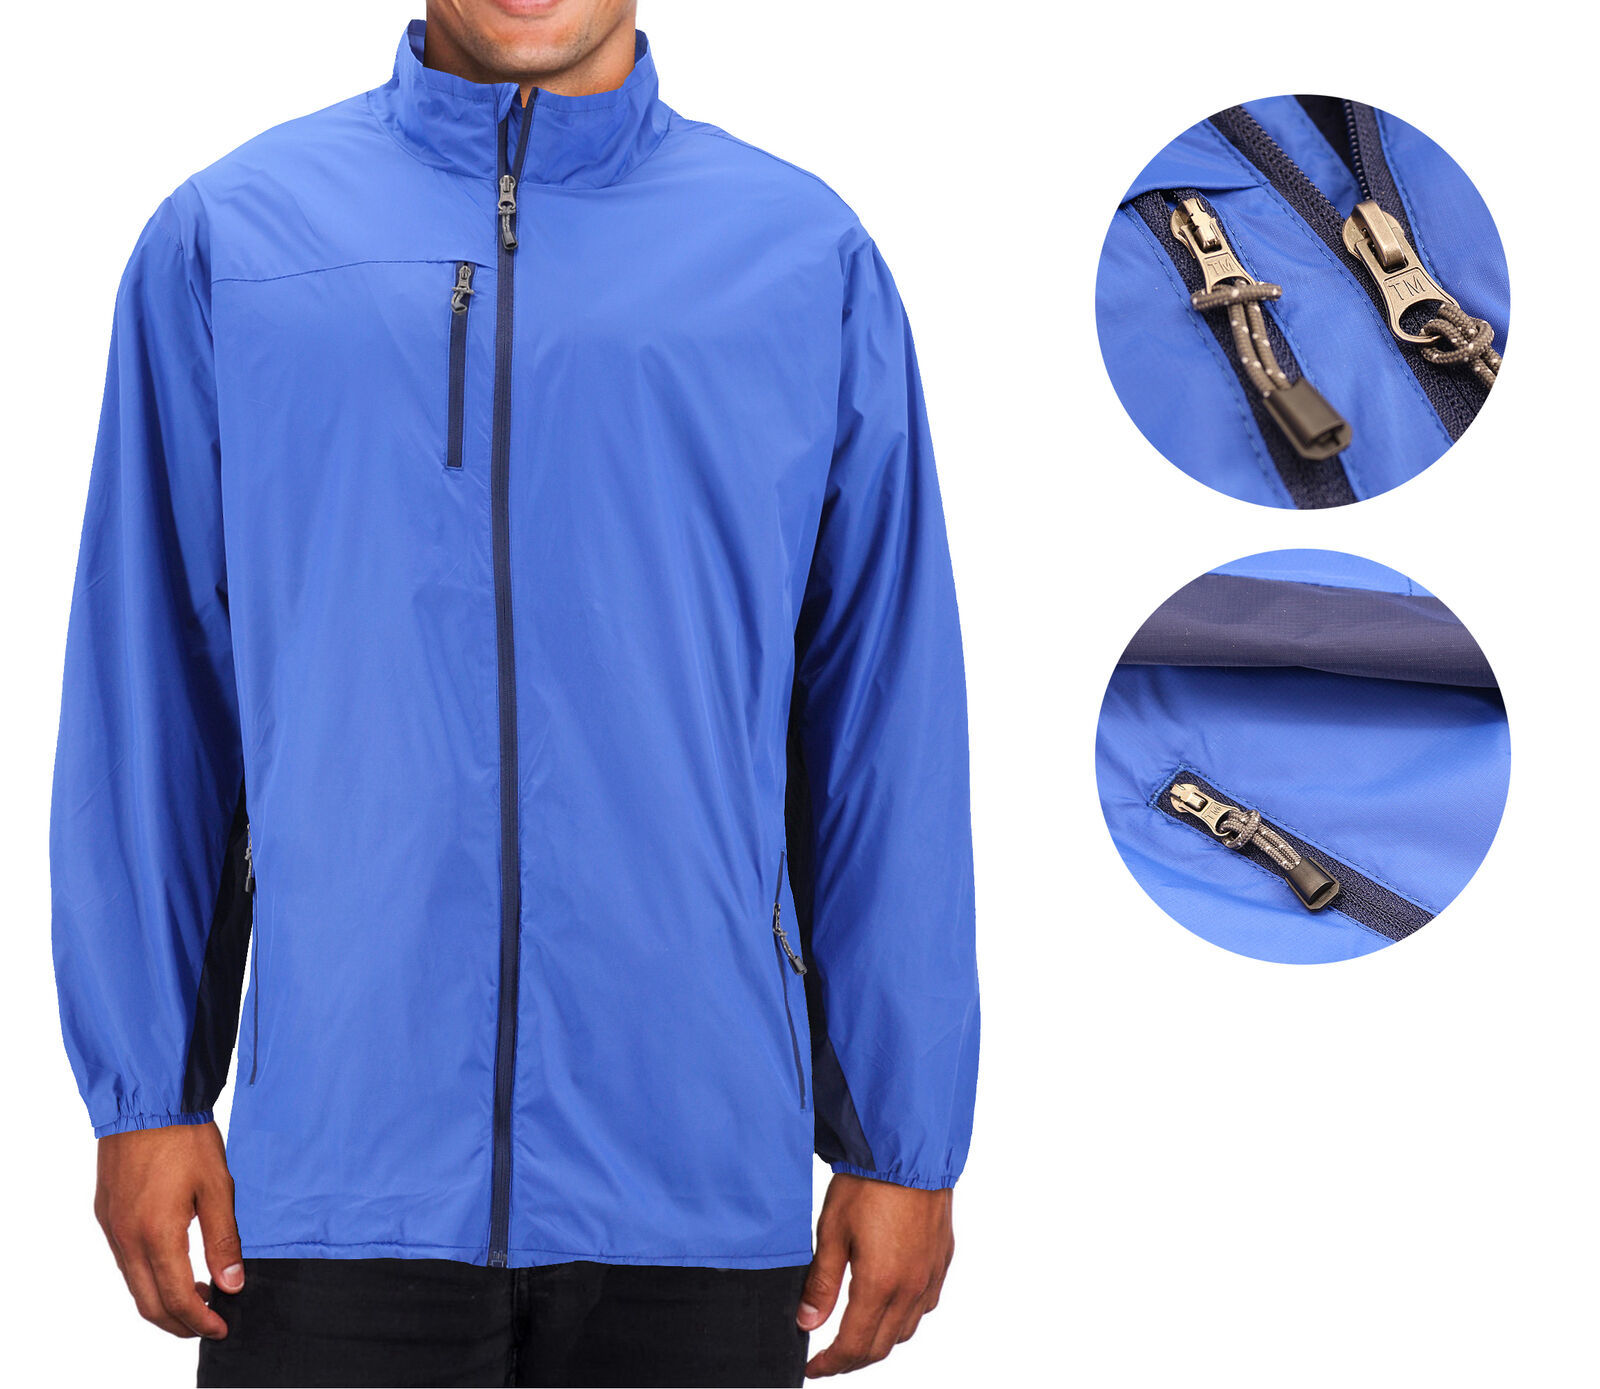 Men's Water Resistant Two Toned Windbreaker Zipper Nylon Rain Jacket